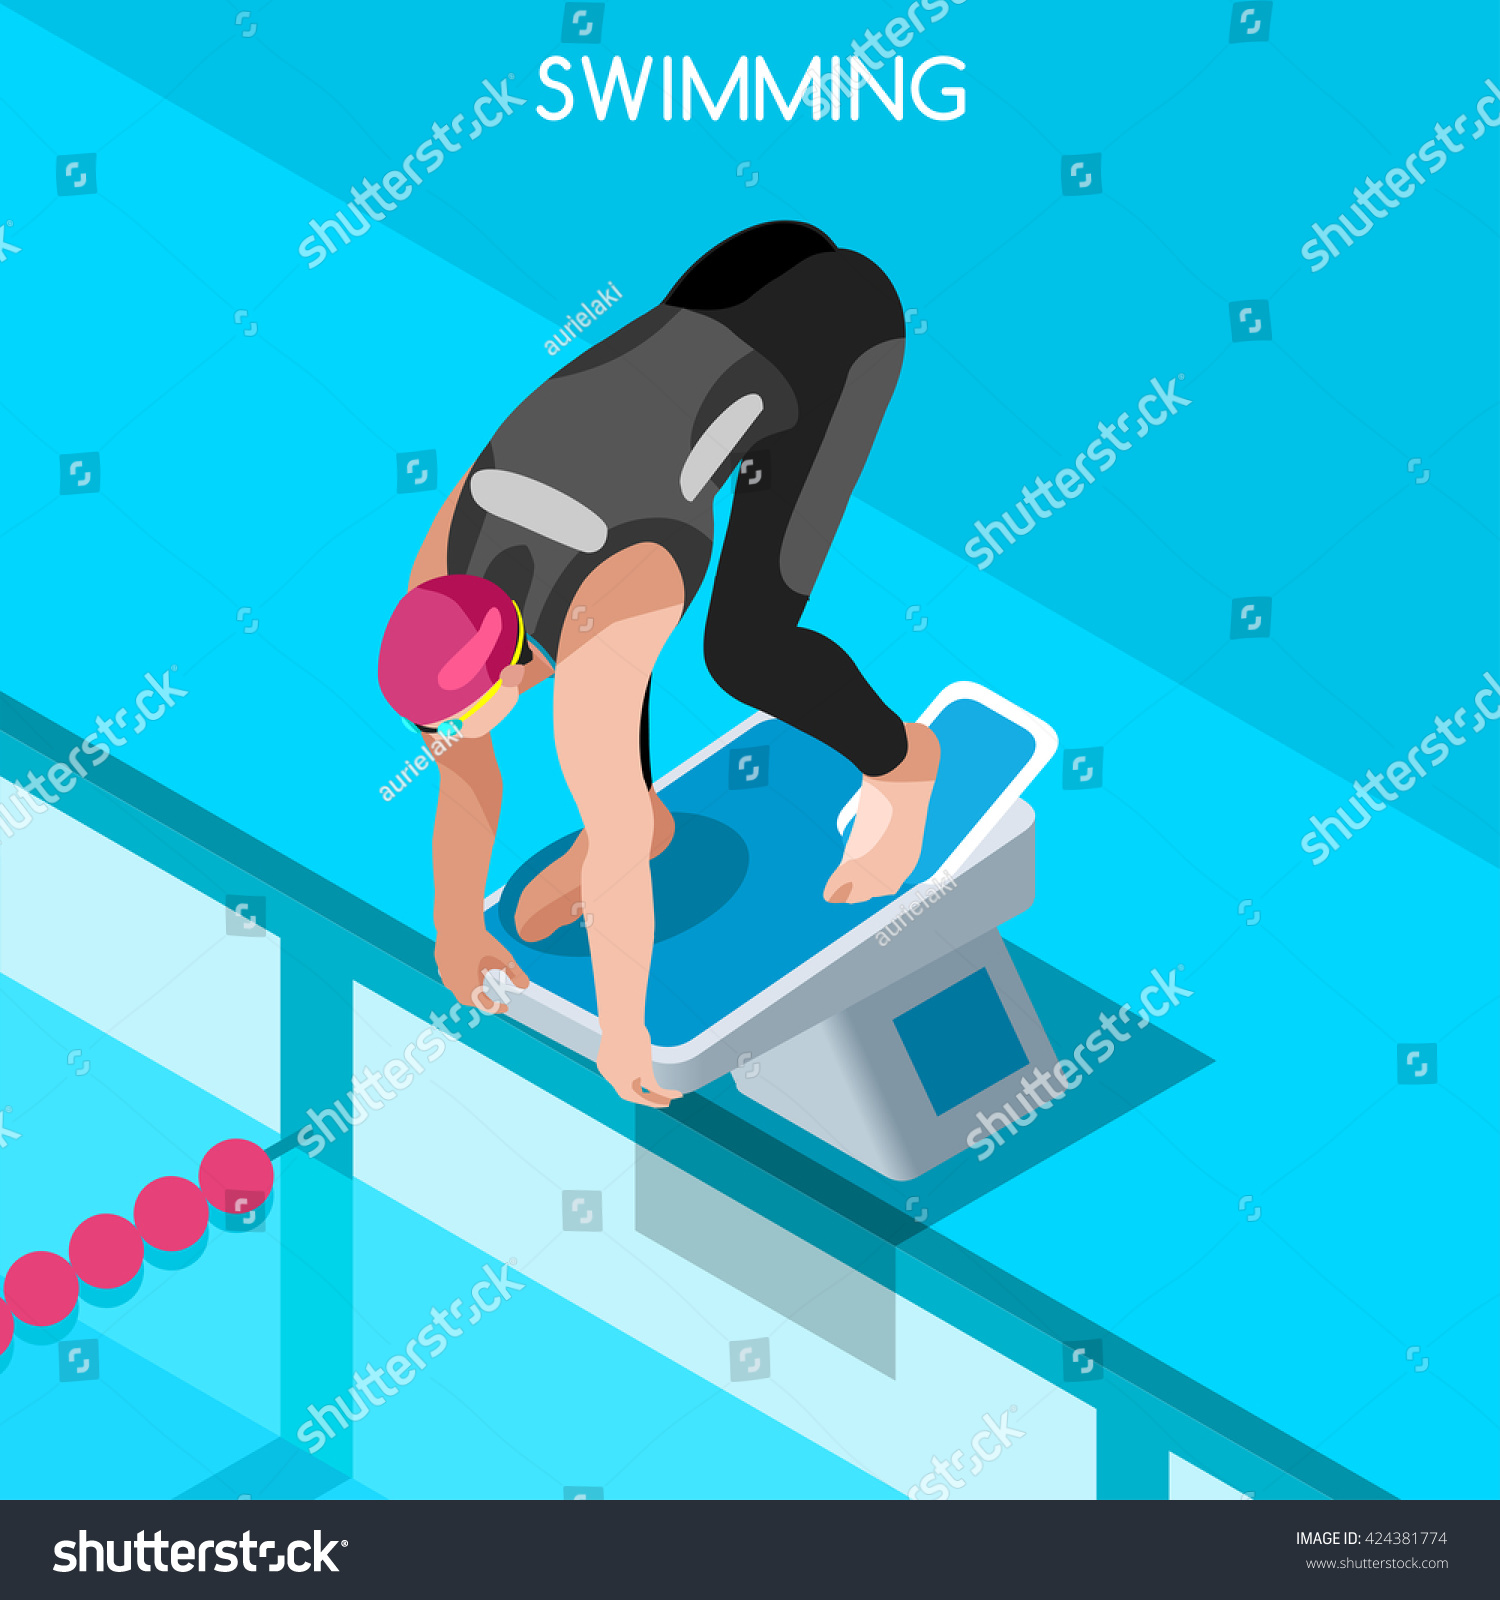 Swimming Images Stock Photos amp Vectors  Shutterstock